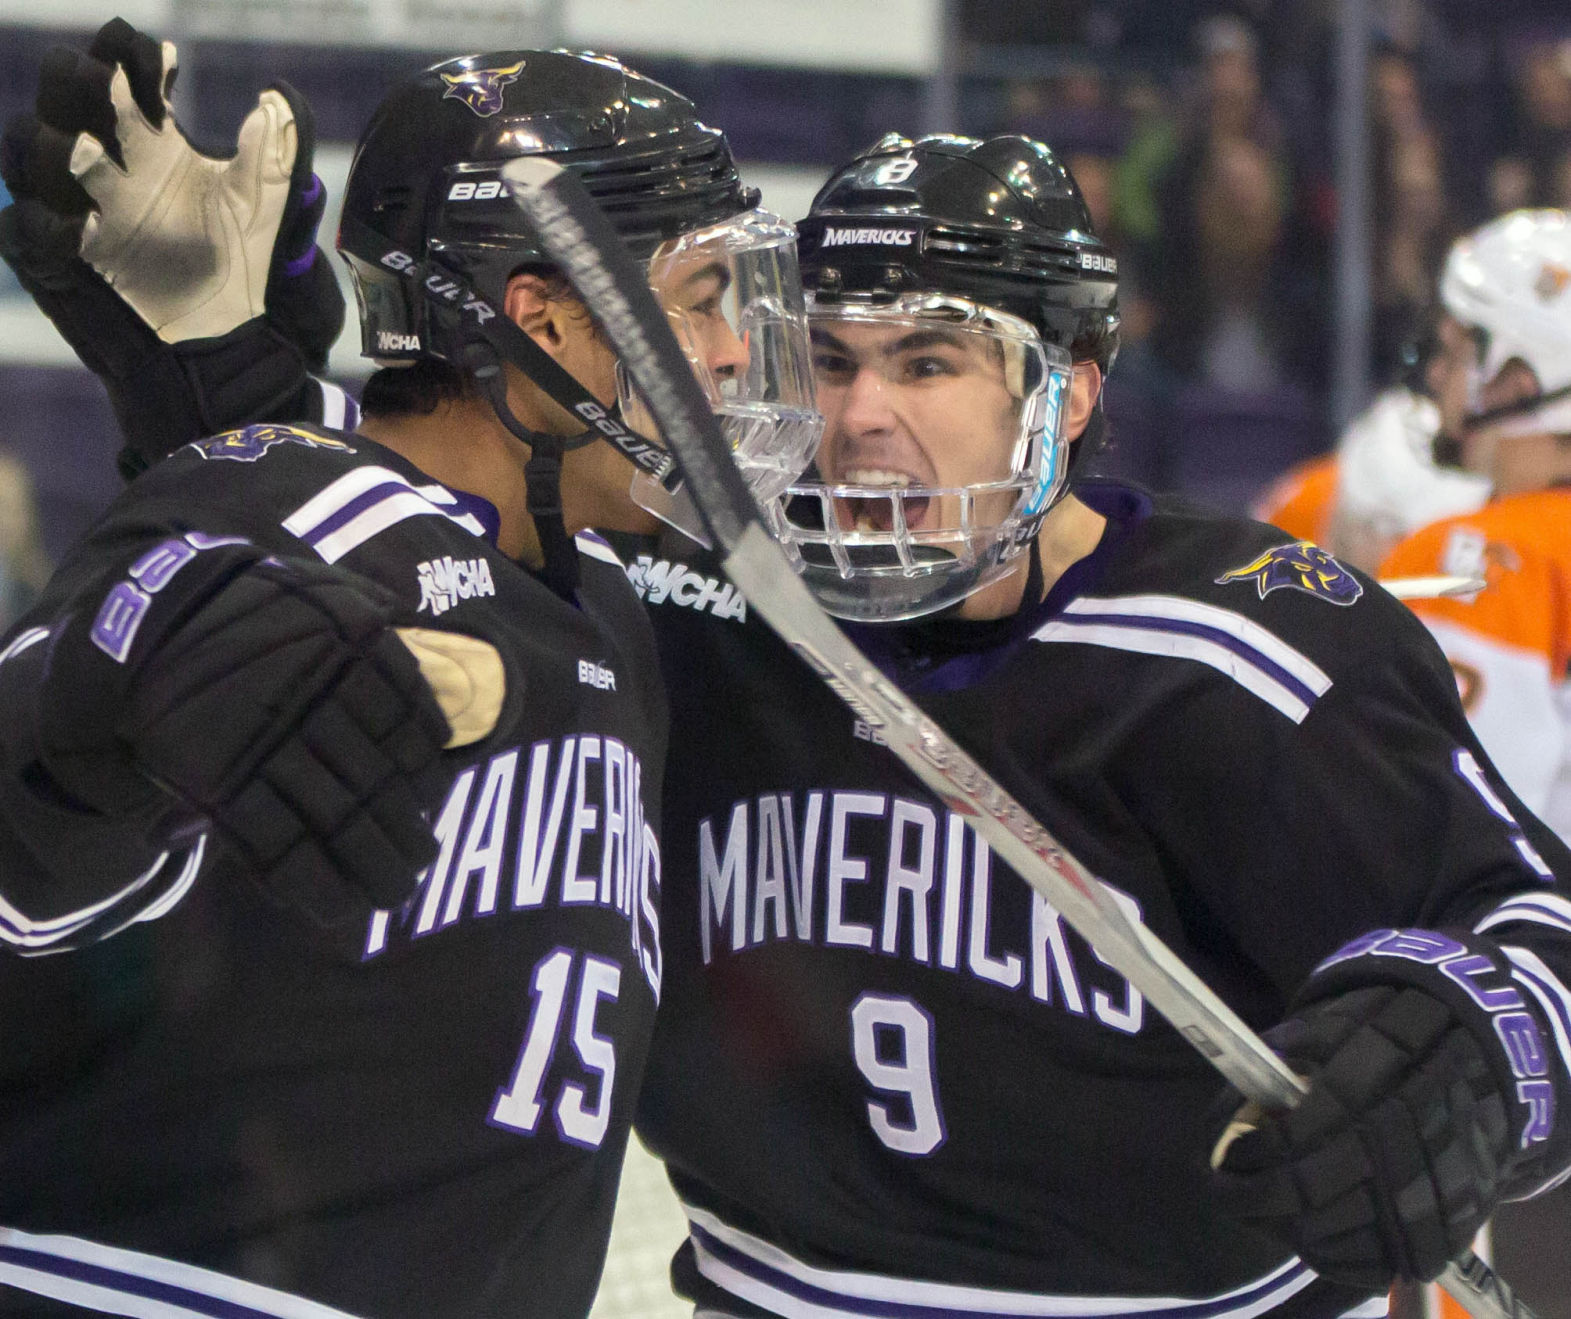 WCHA: Mavericks 5, Falcons 1